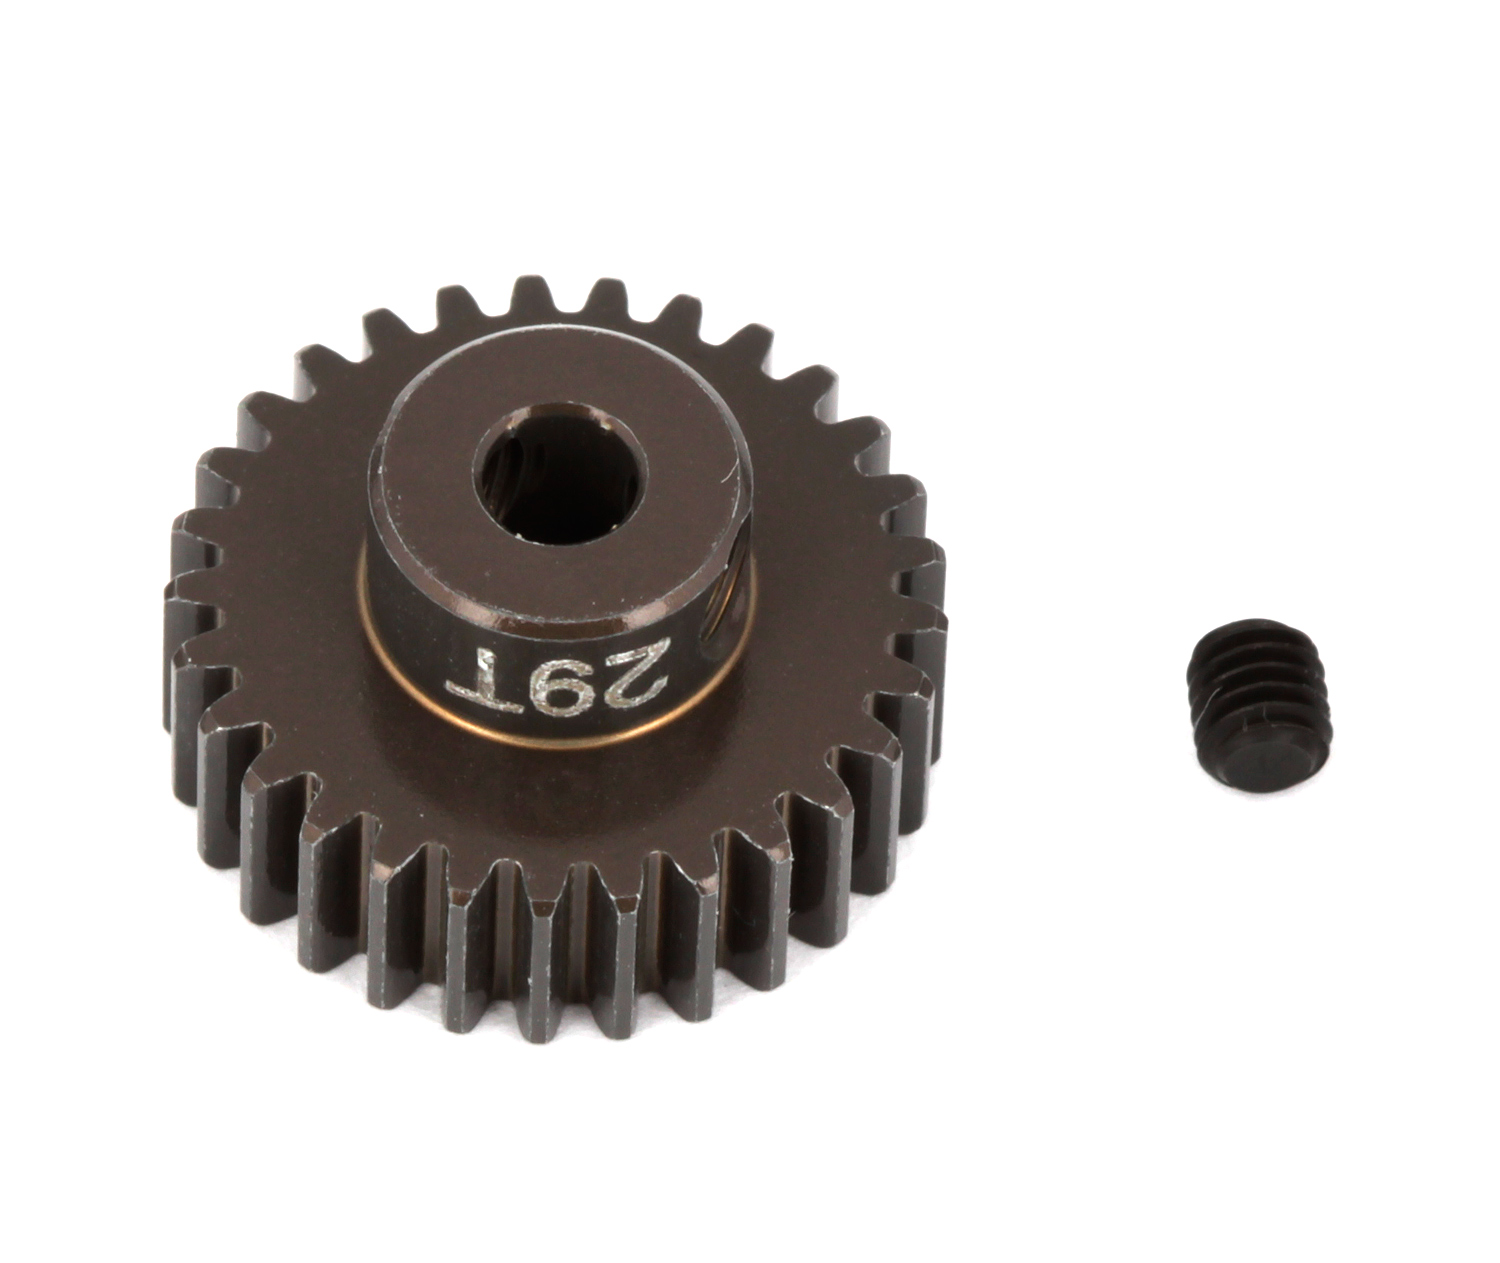 ASC1347 FT Aluminum Pinion Gear, 29T 48P, 1/8 shaft